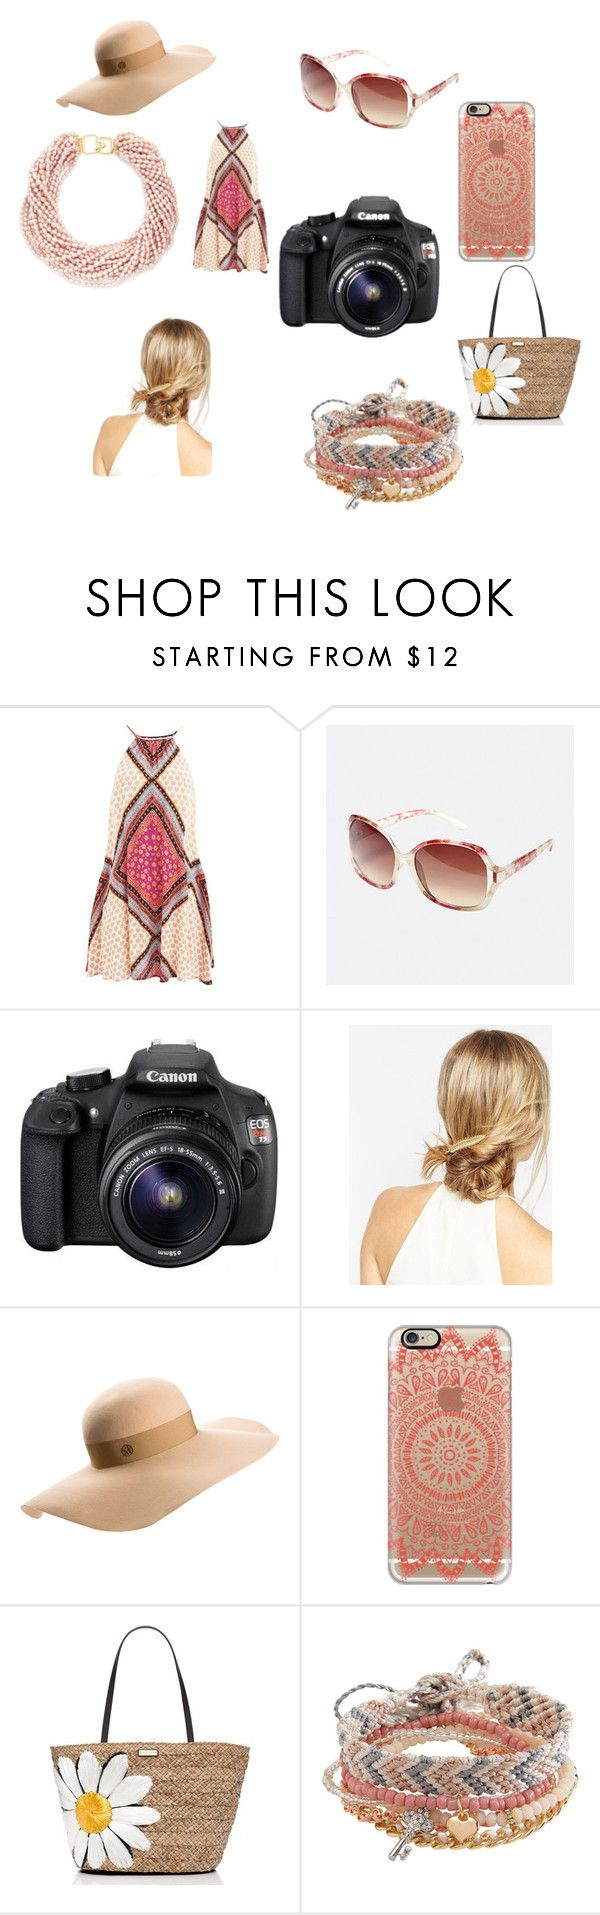 """Sogno di mezza estate"" by simona-norfini on Polyvore featuring MINKPINK, Avenue, Eos, ASOS, Maison Michel, Casetify, Kate Spade, Aéropostale and Kenneth Jay Lane"